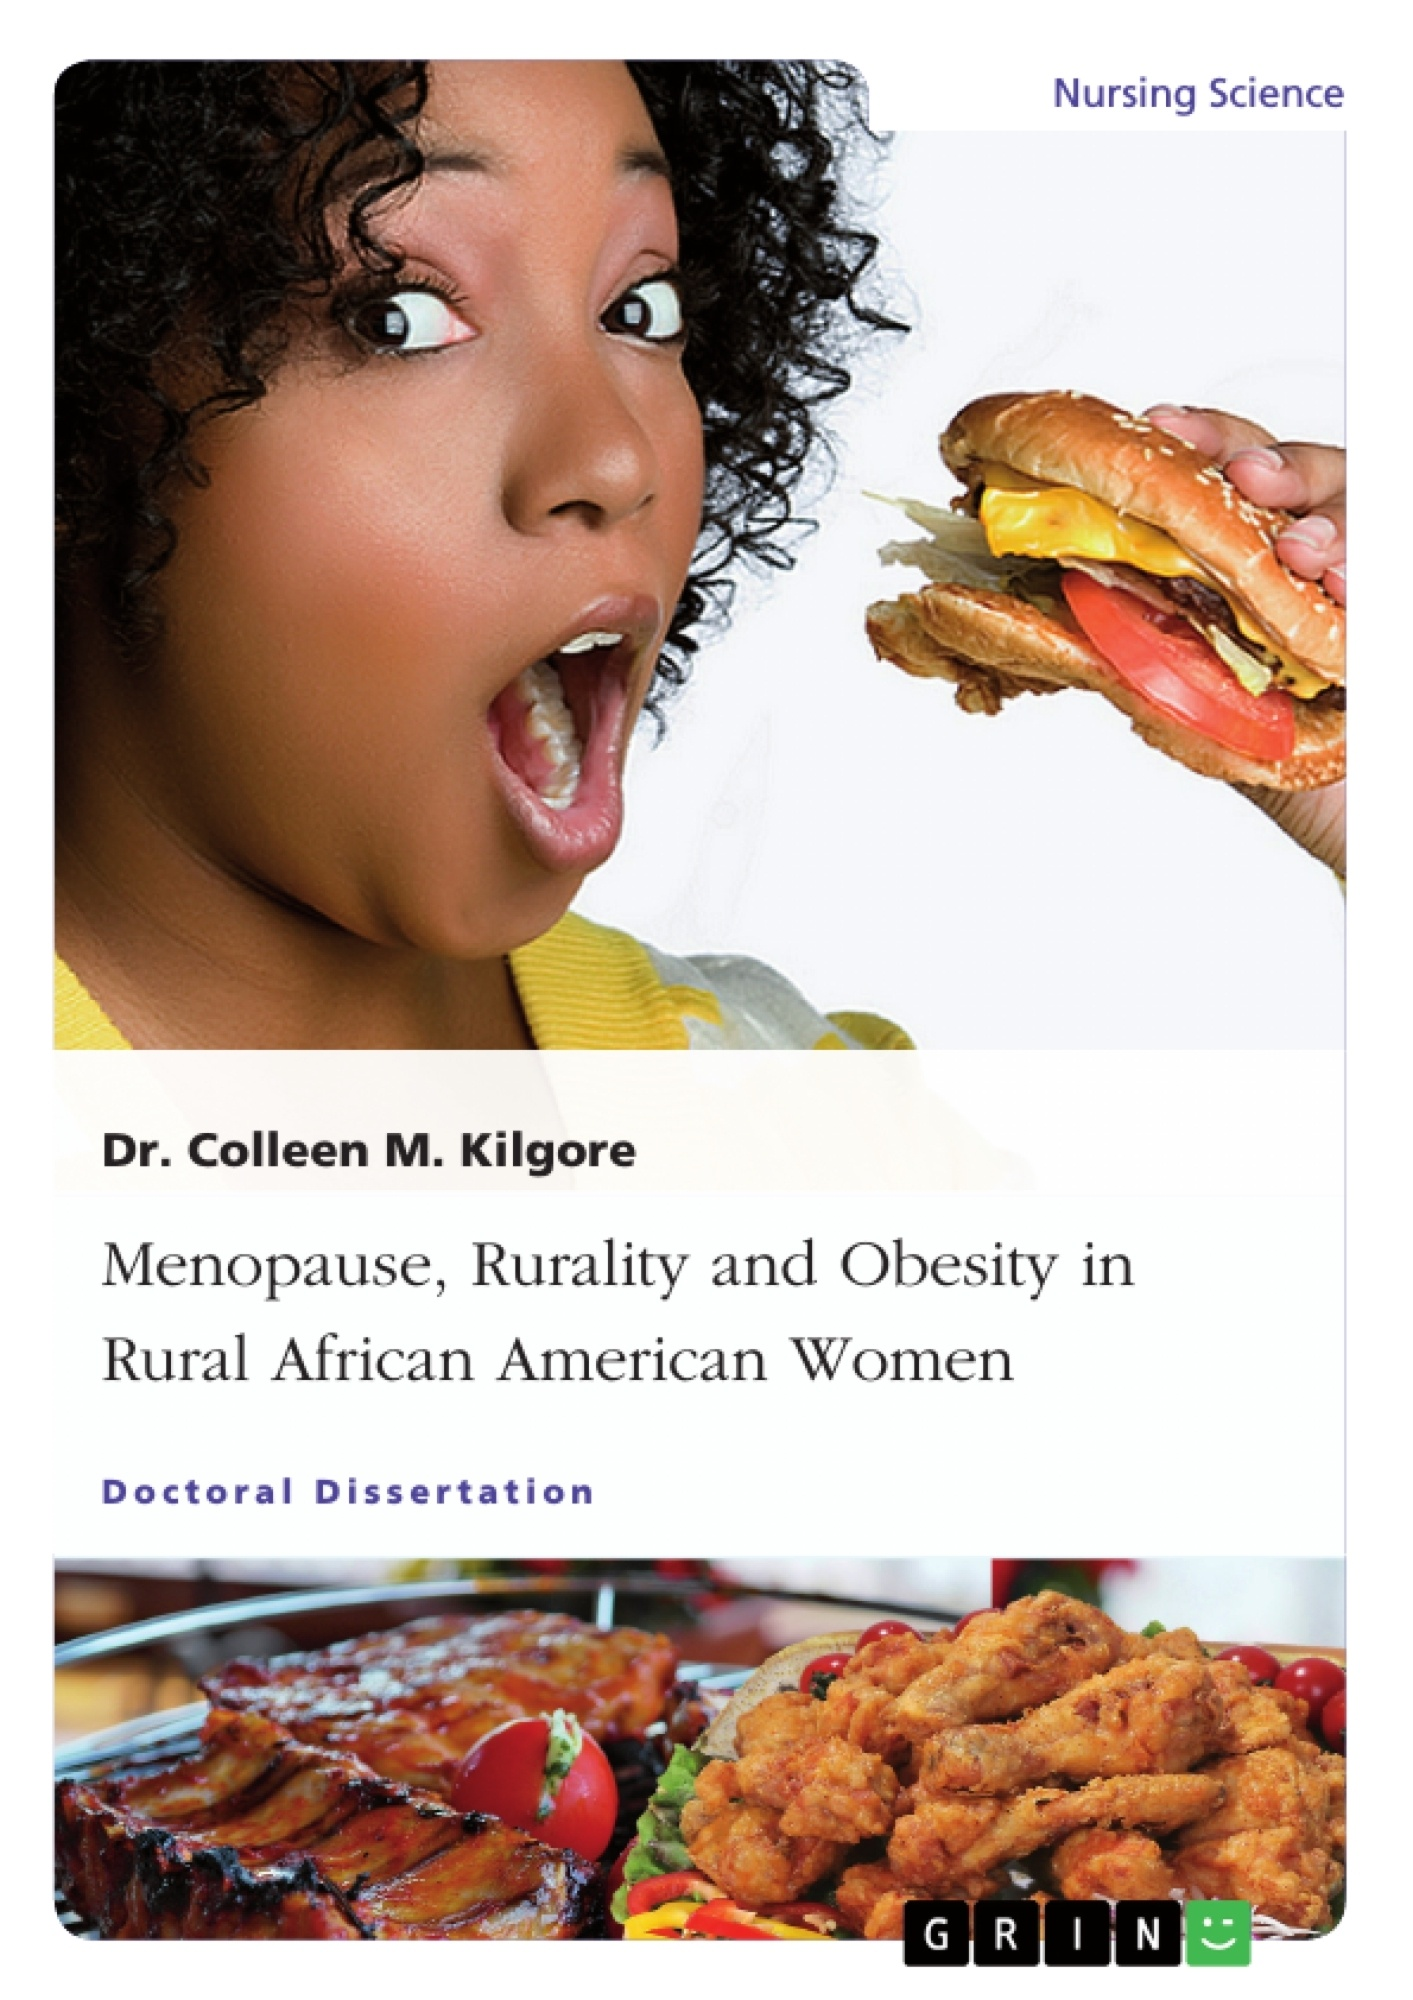 perceptions of african american women essay Exploring four barriers experienced by african americans in healthcare: perceived discrimination however, african american women are less likely than european american women to have breast cancer diagnosed from a first, perceptions of discrimination could have a direct effect on.